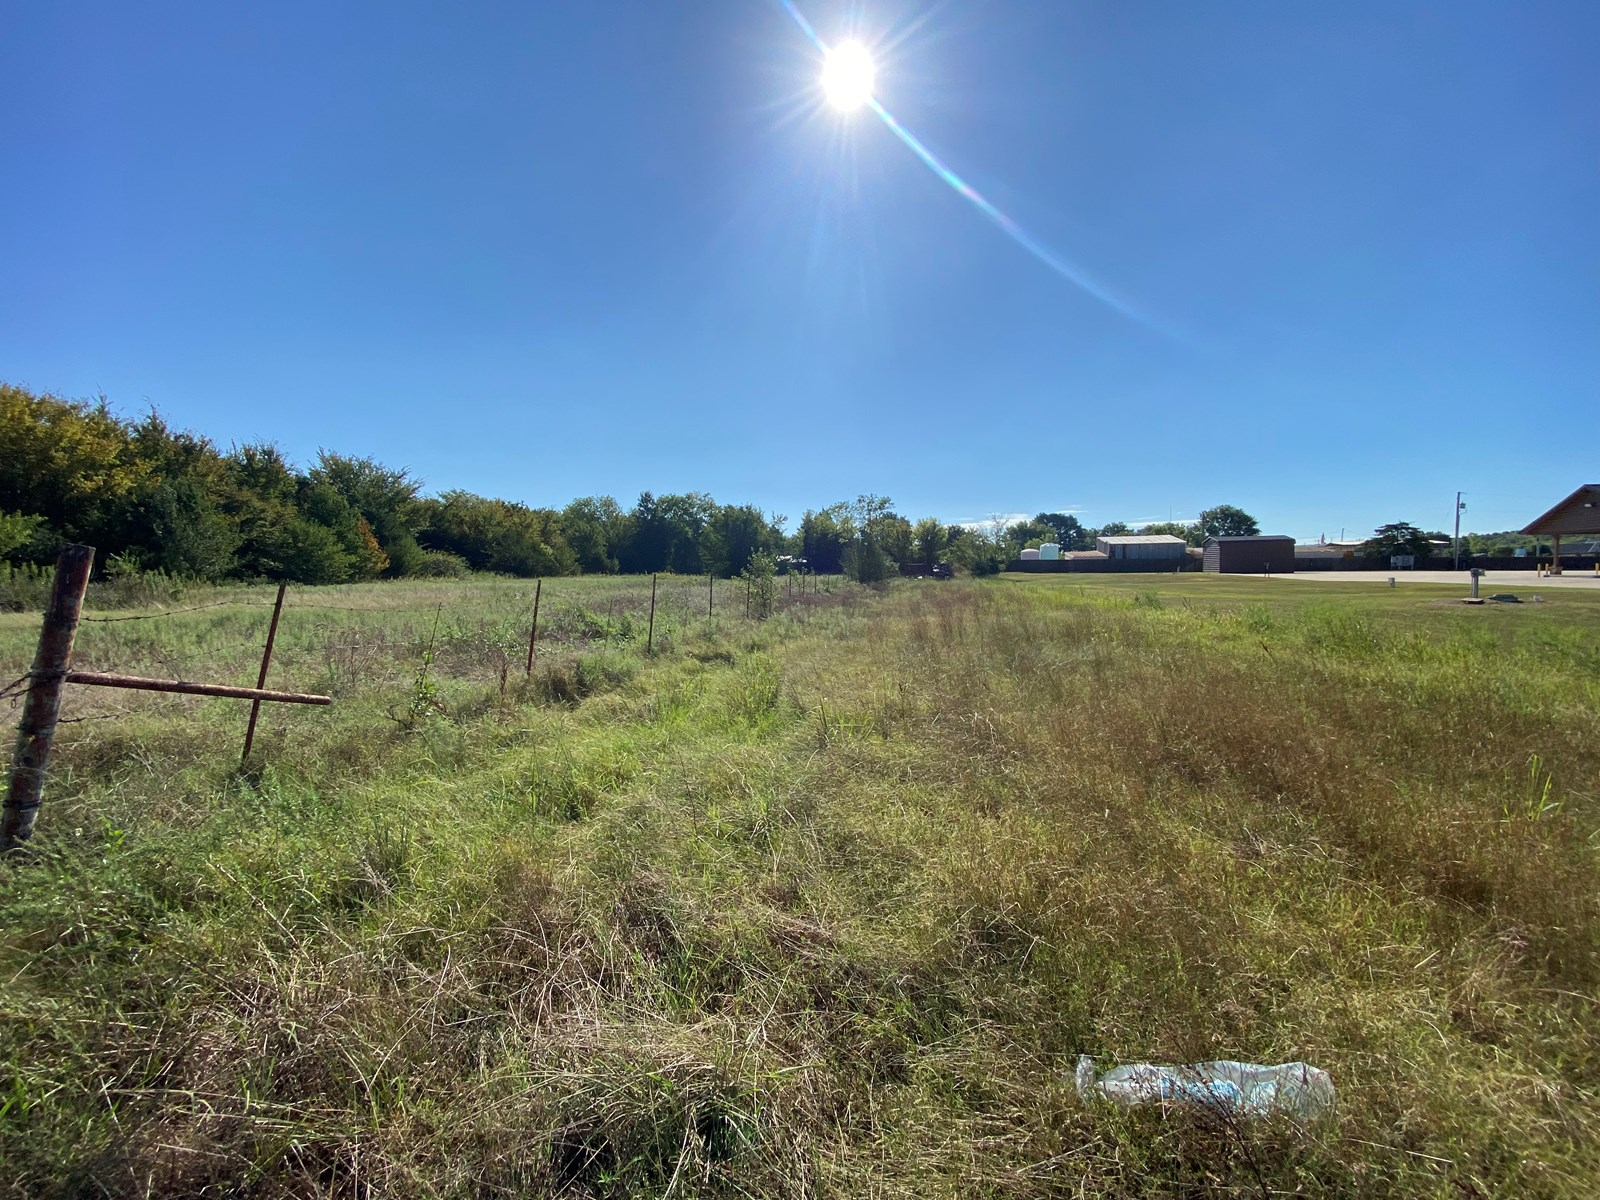 Land For Sale SE Oklahoma- Lots For sale in Wilburton,OK